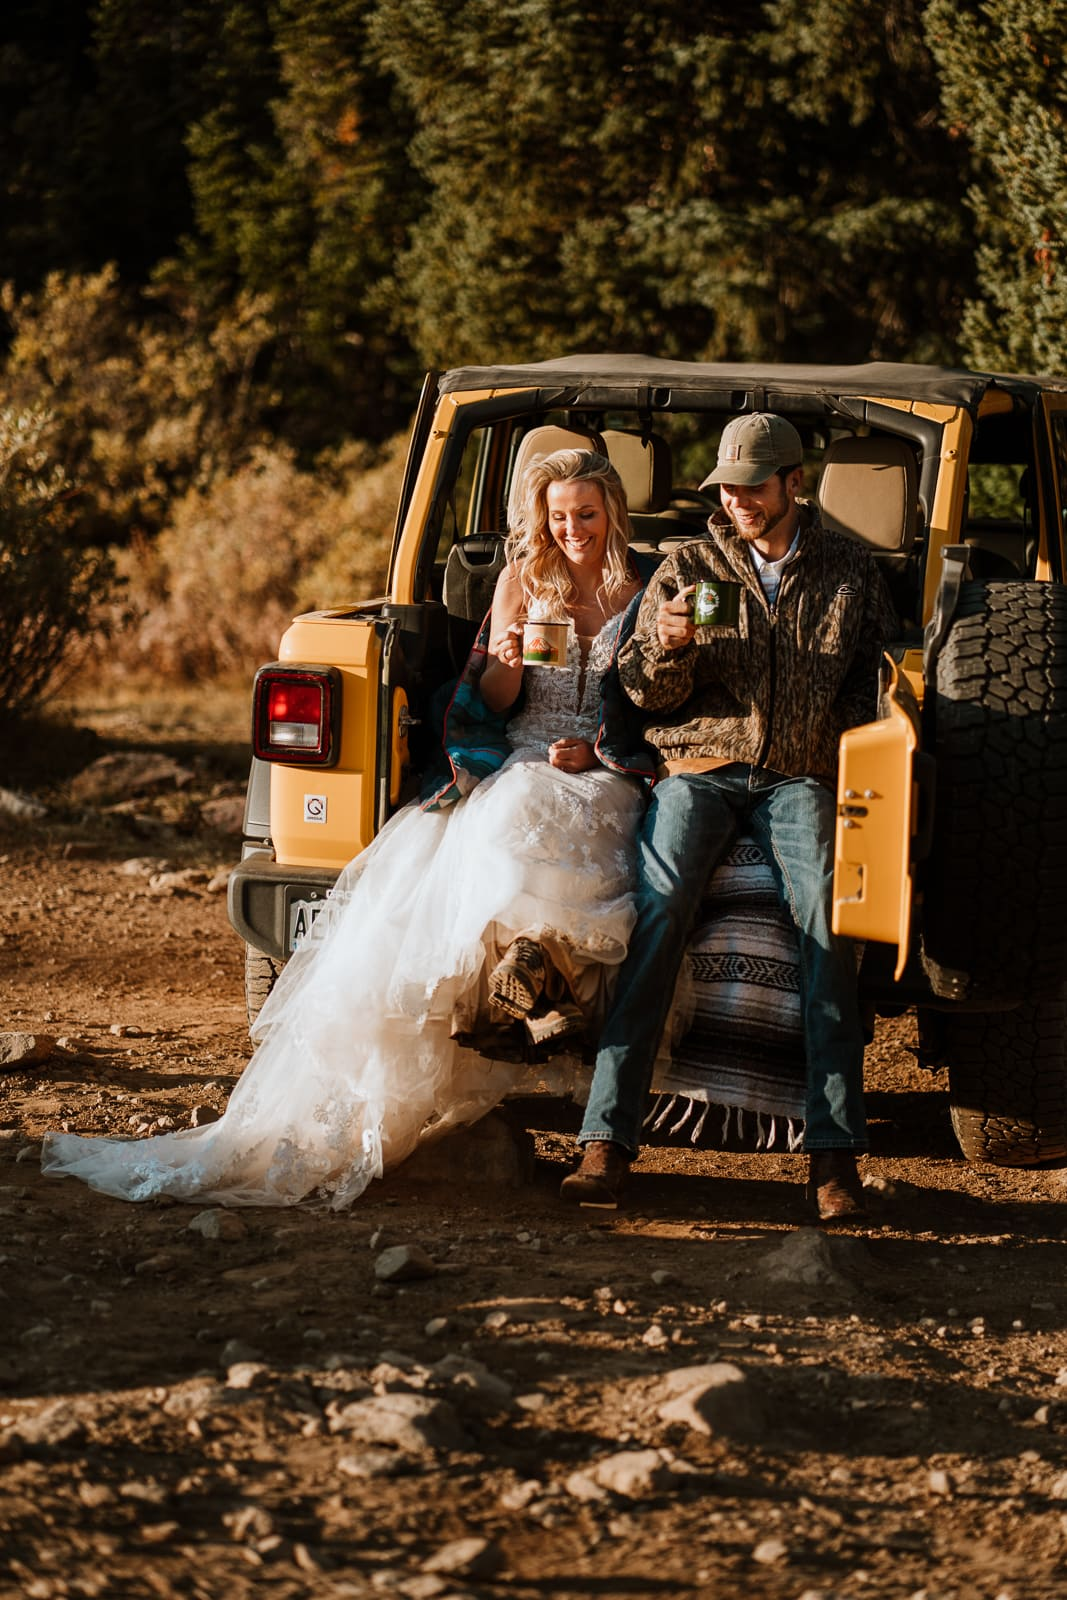 A wedding couple is sitting in the back of a Jeep and is driving hot beverages.